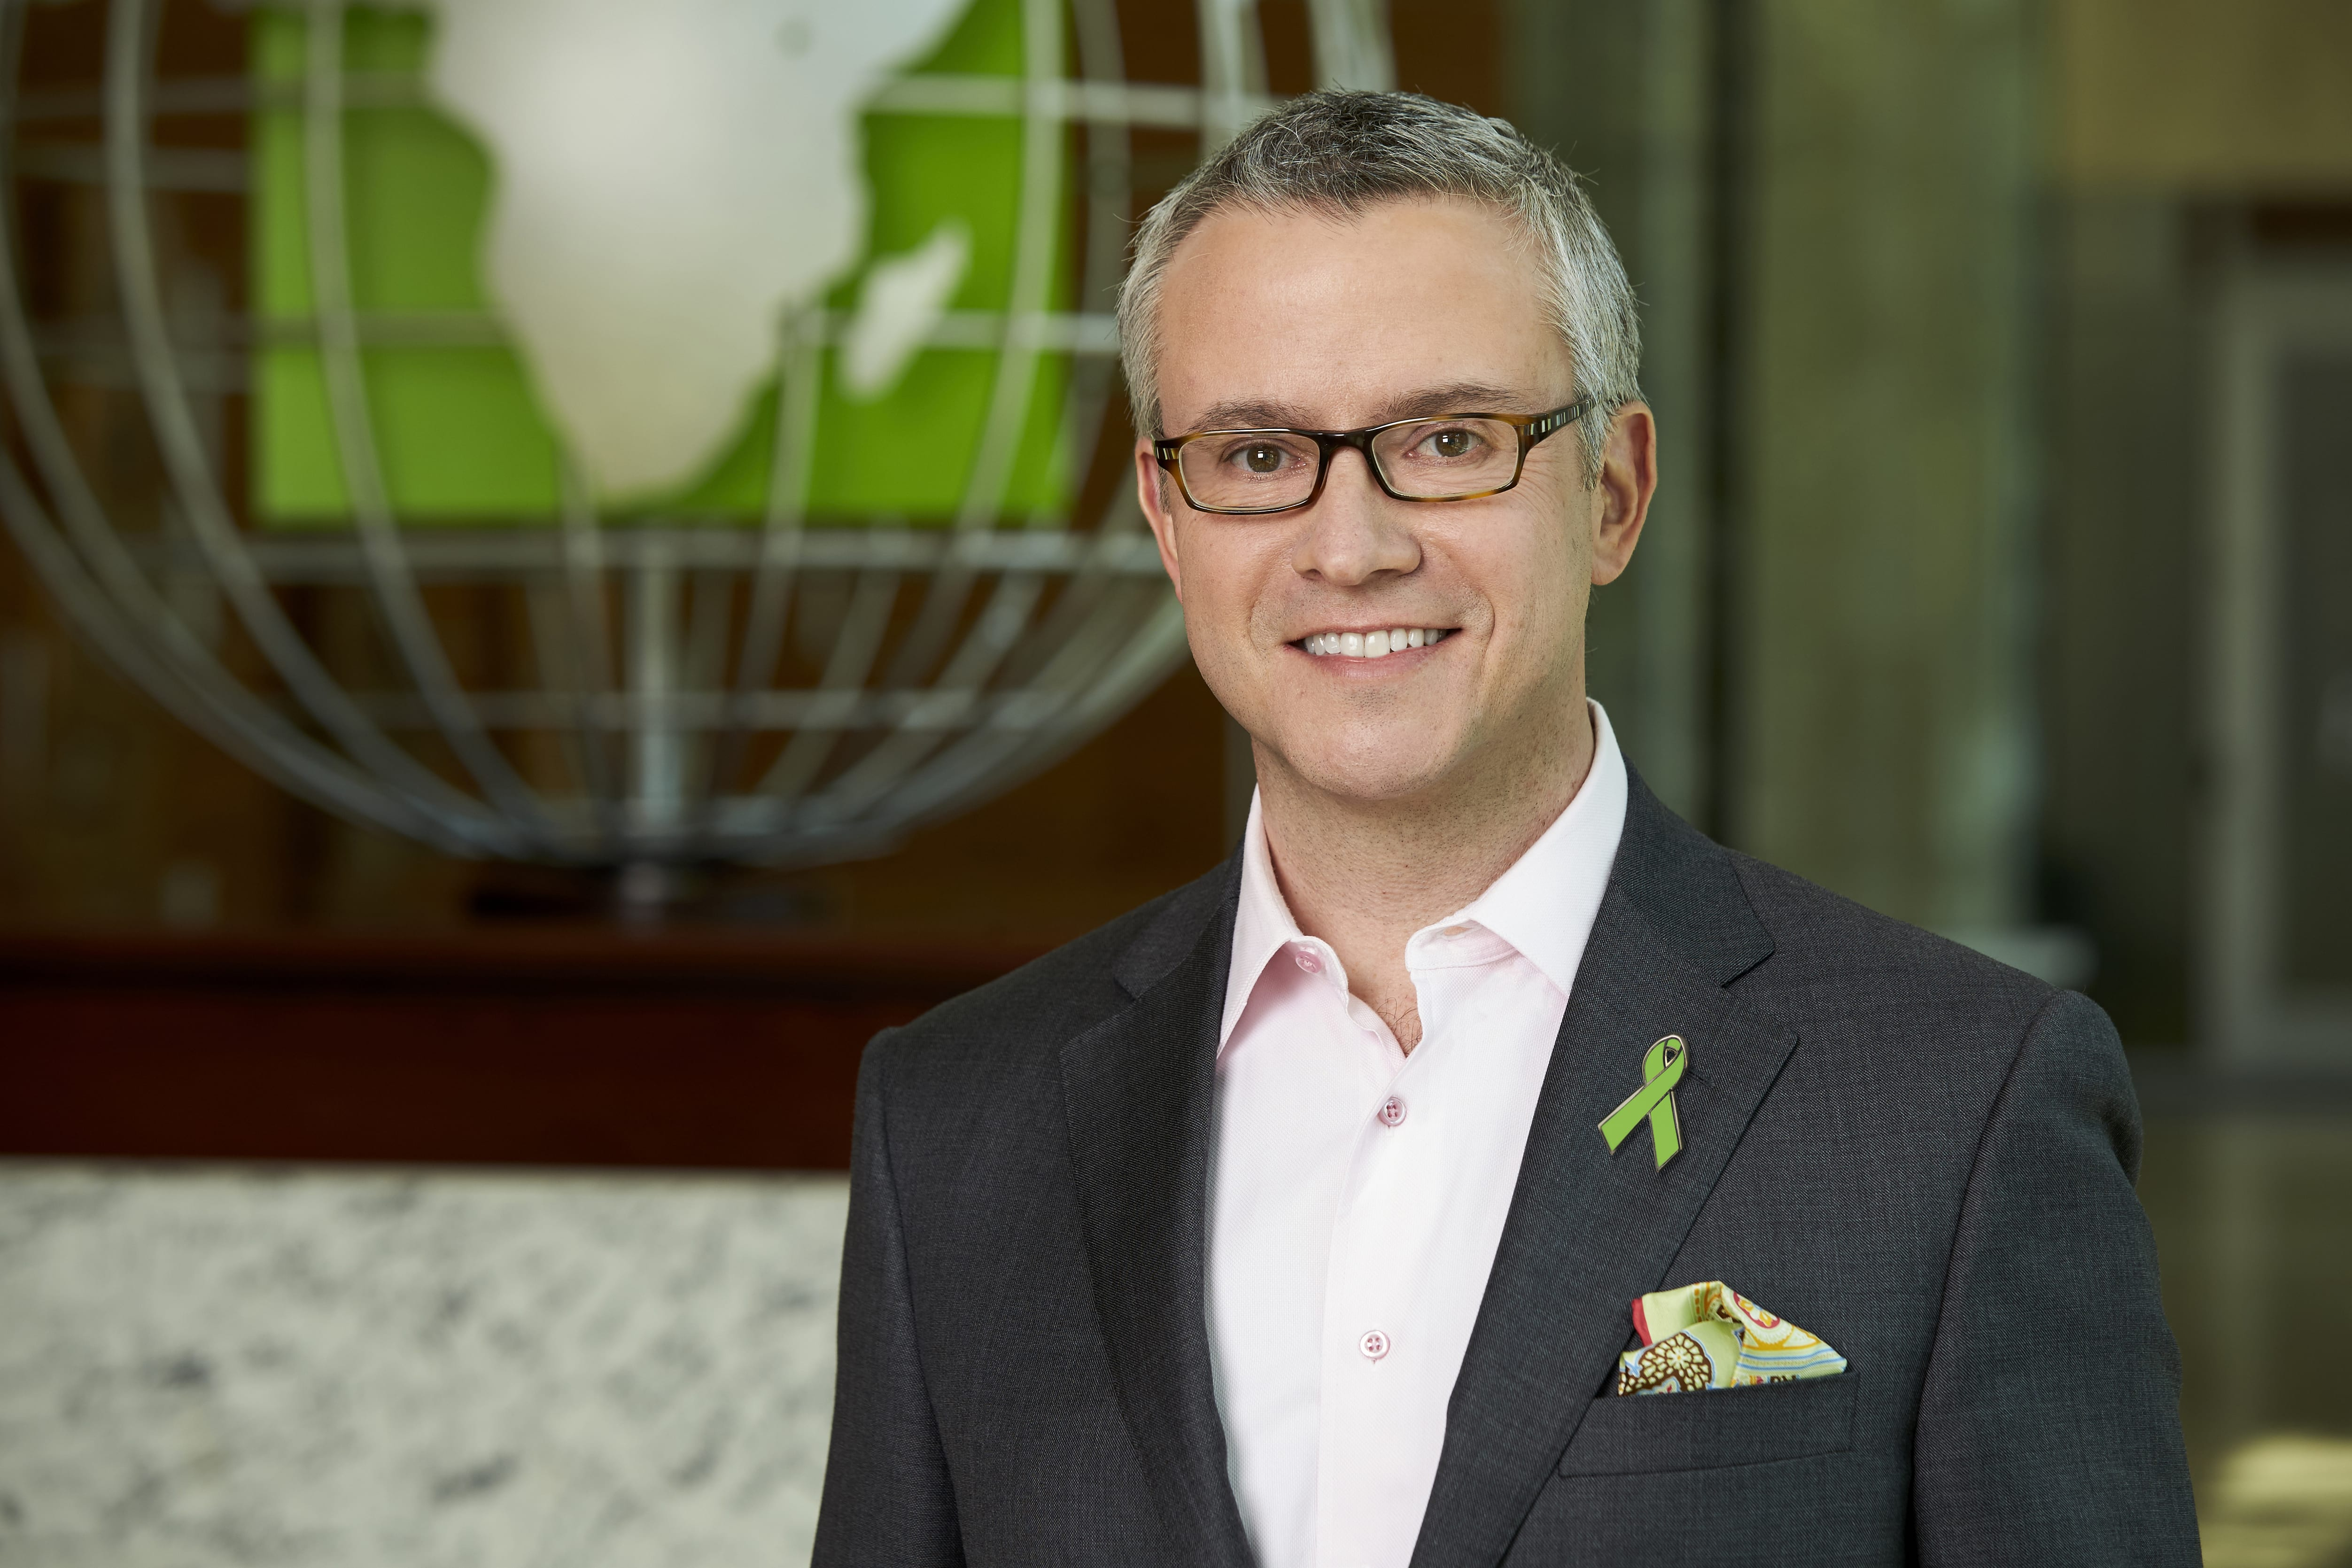 Photo of Jeff Jones, President & CEO of H&Block and Green Ribbon Champion